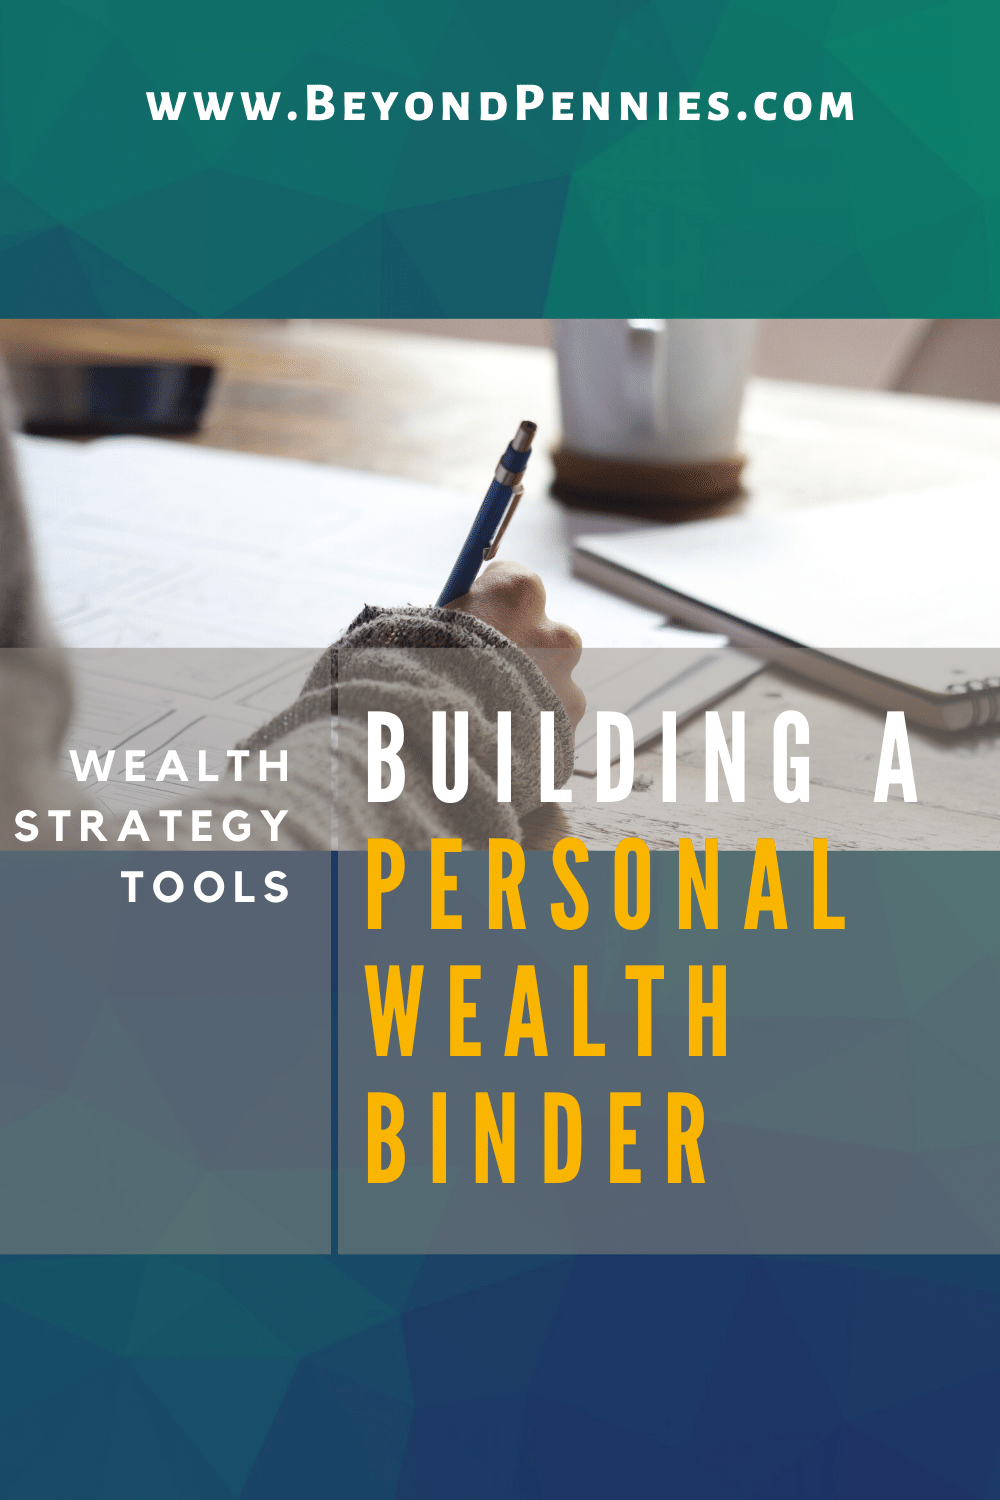 Wealth Strategy: Build a Personal Wealth Binder